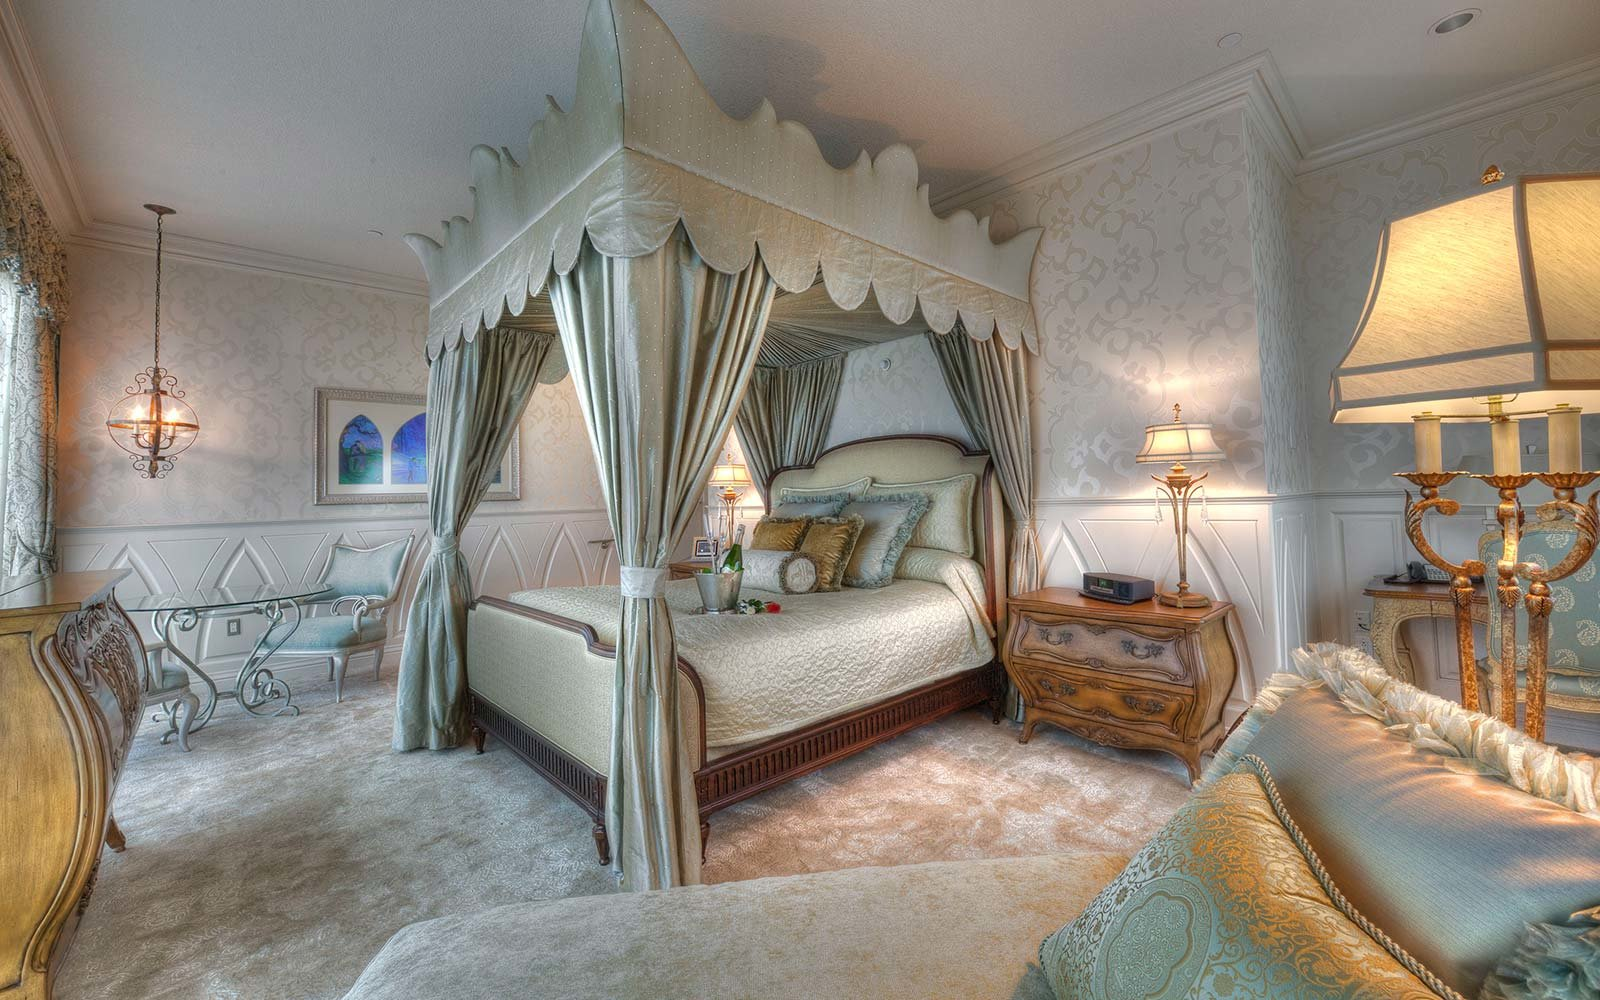 Fairy Tale Suite at Disneyland Hotel